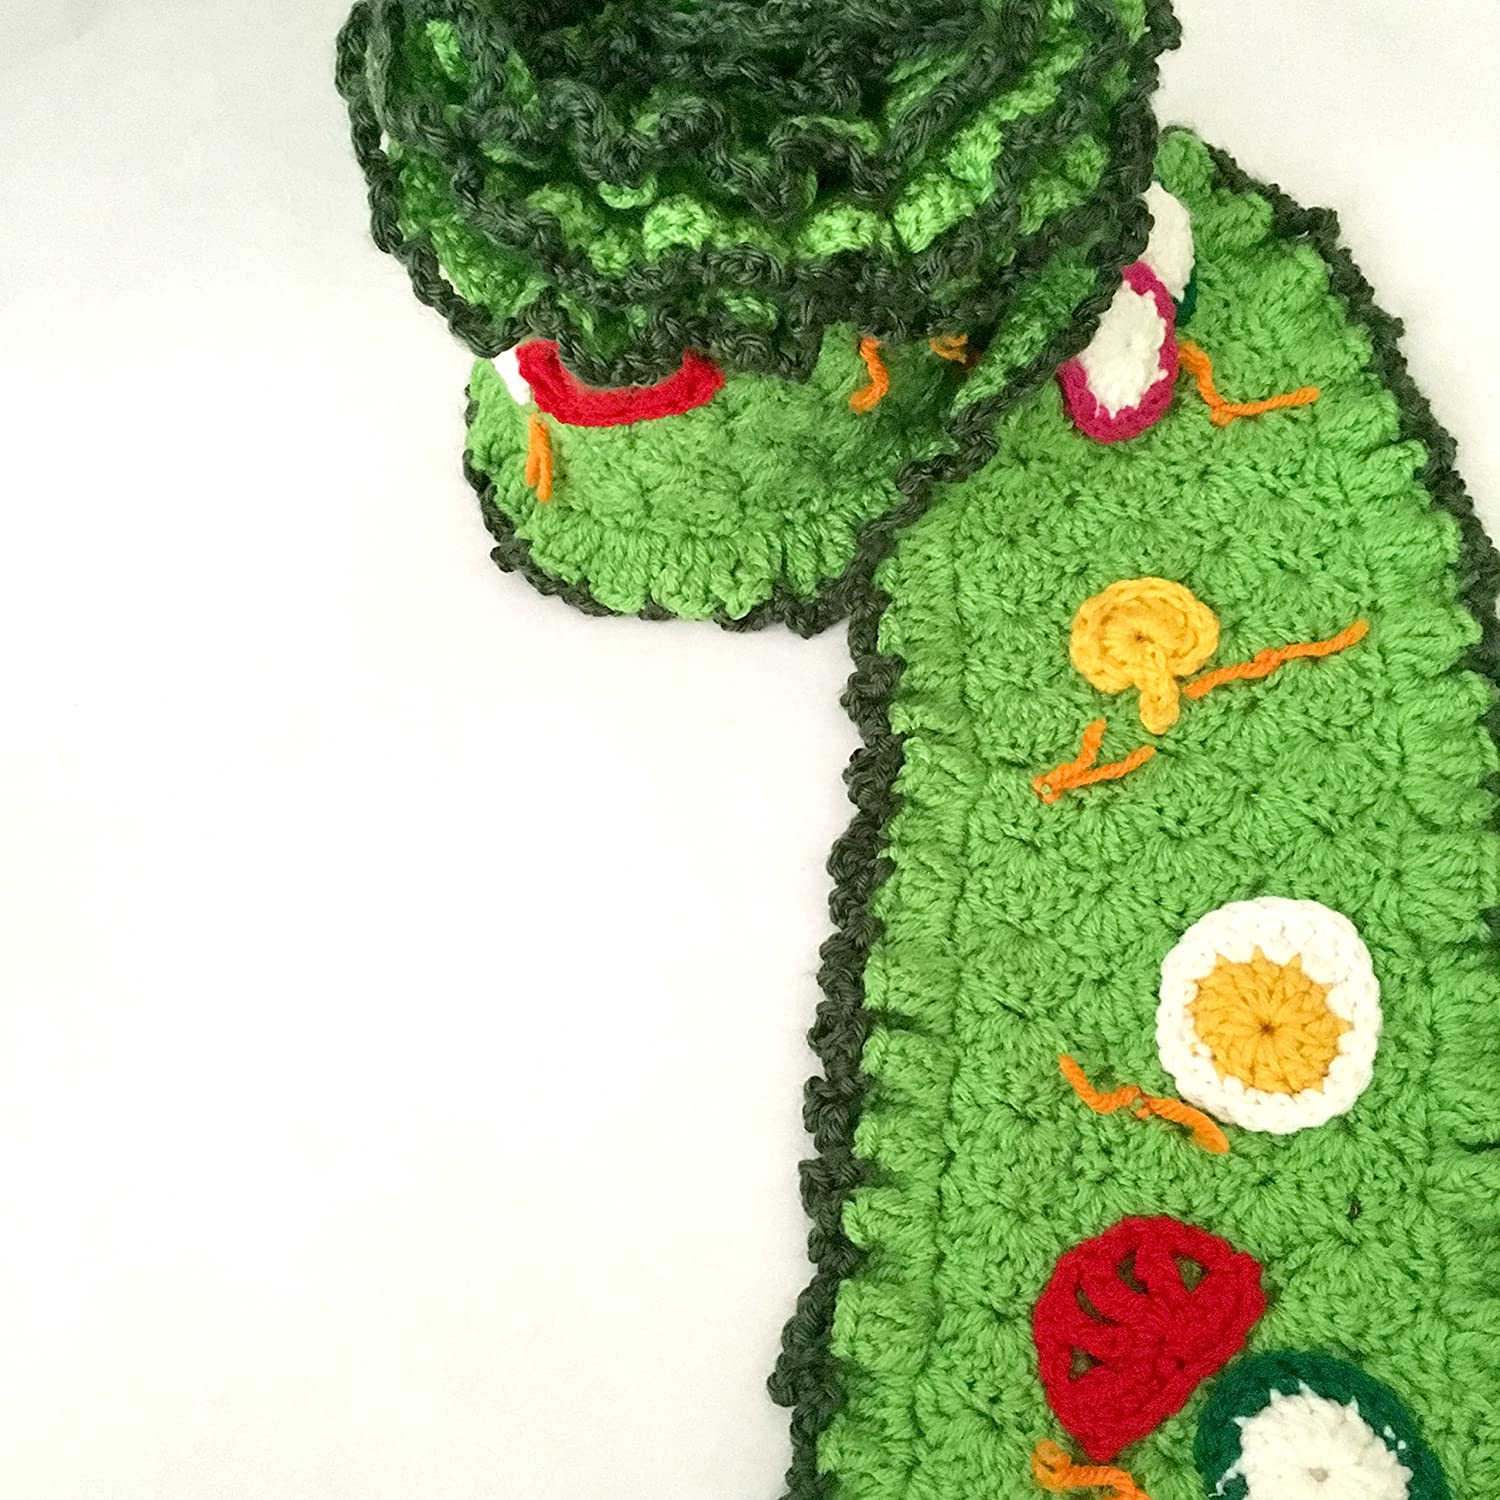 Amazon.com: crochet salad scarf with red tomatoes, orange carrots ...